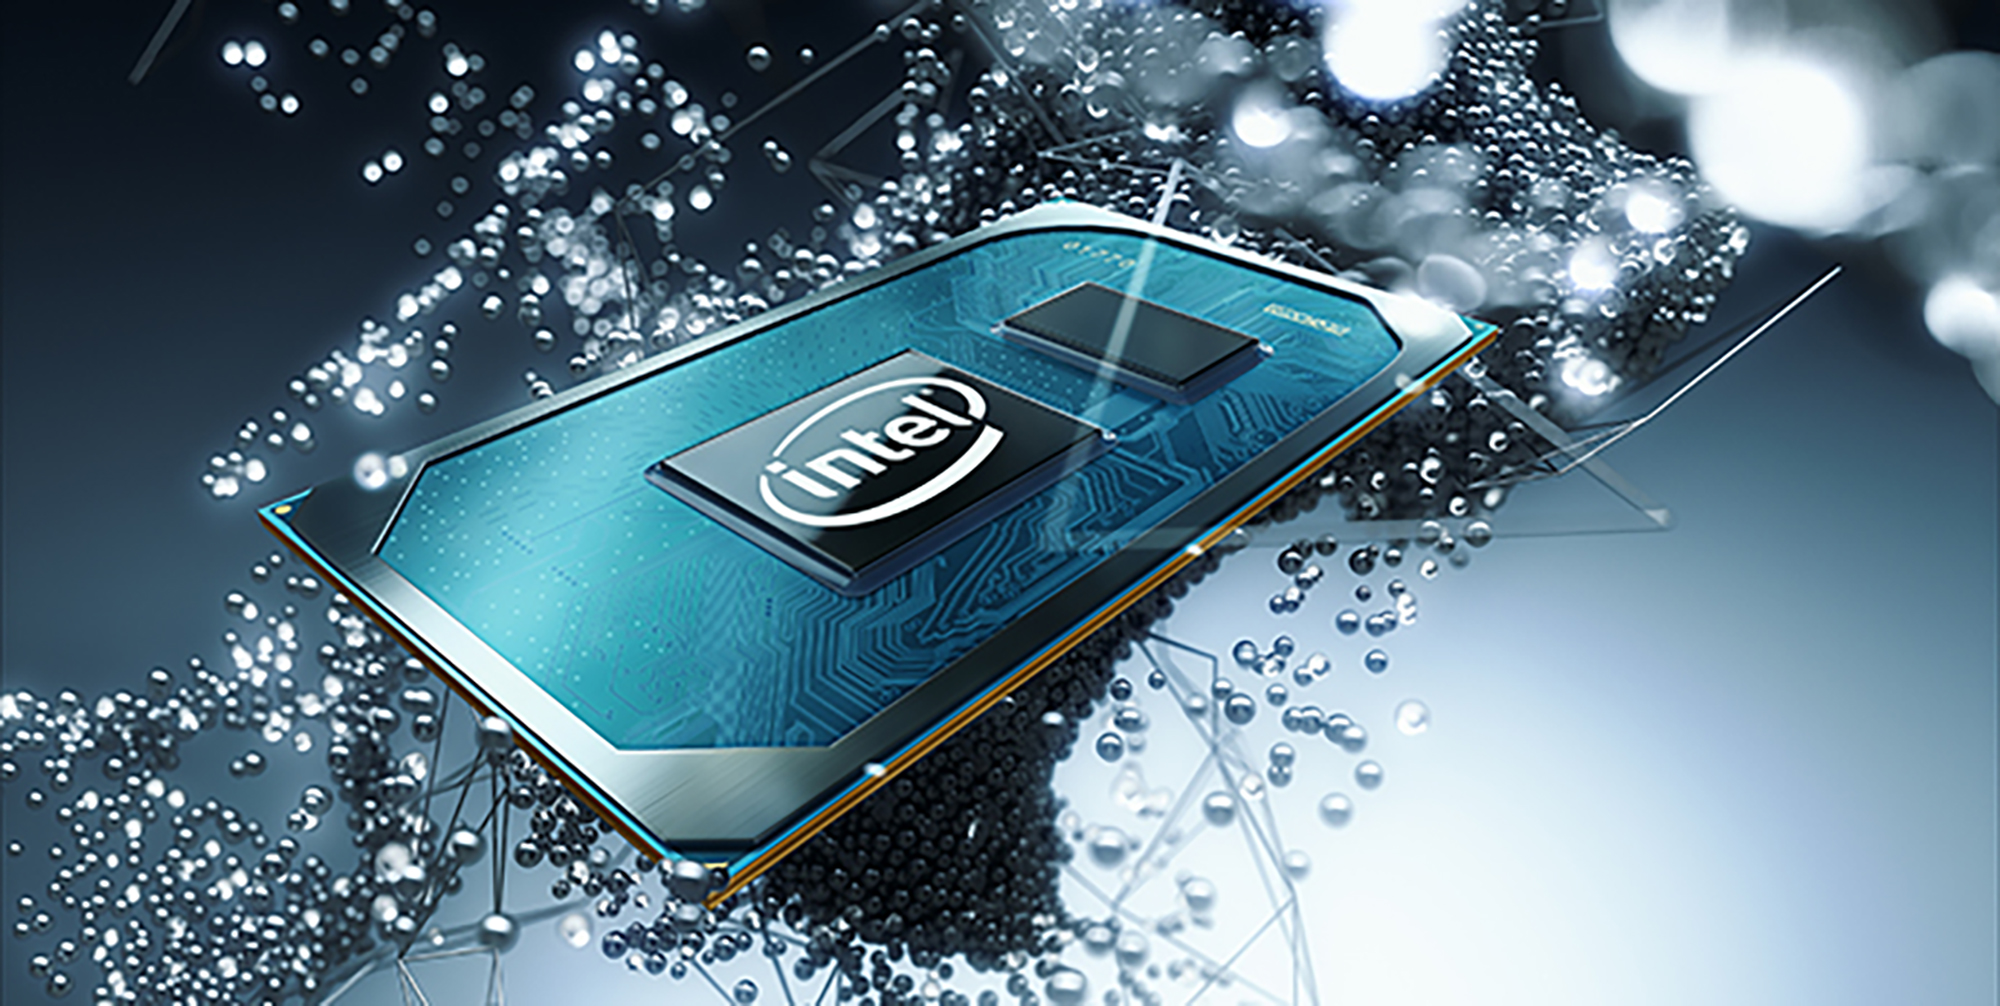 Intel Tiger Lake CPUs: Rumors, release date, specs, benchmarks and ...